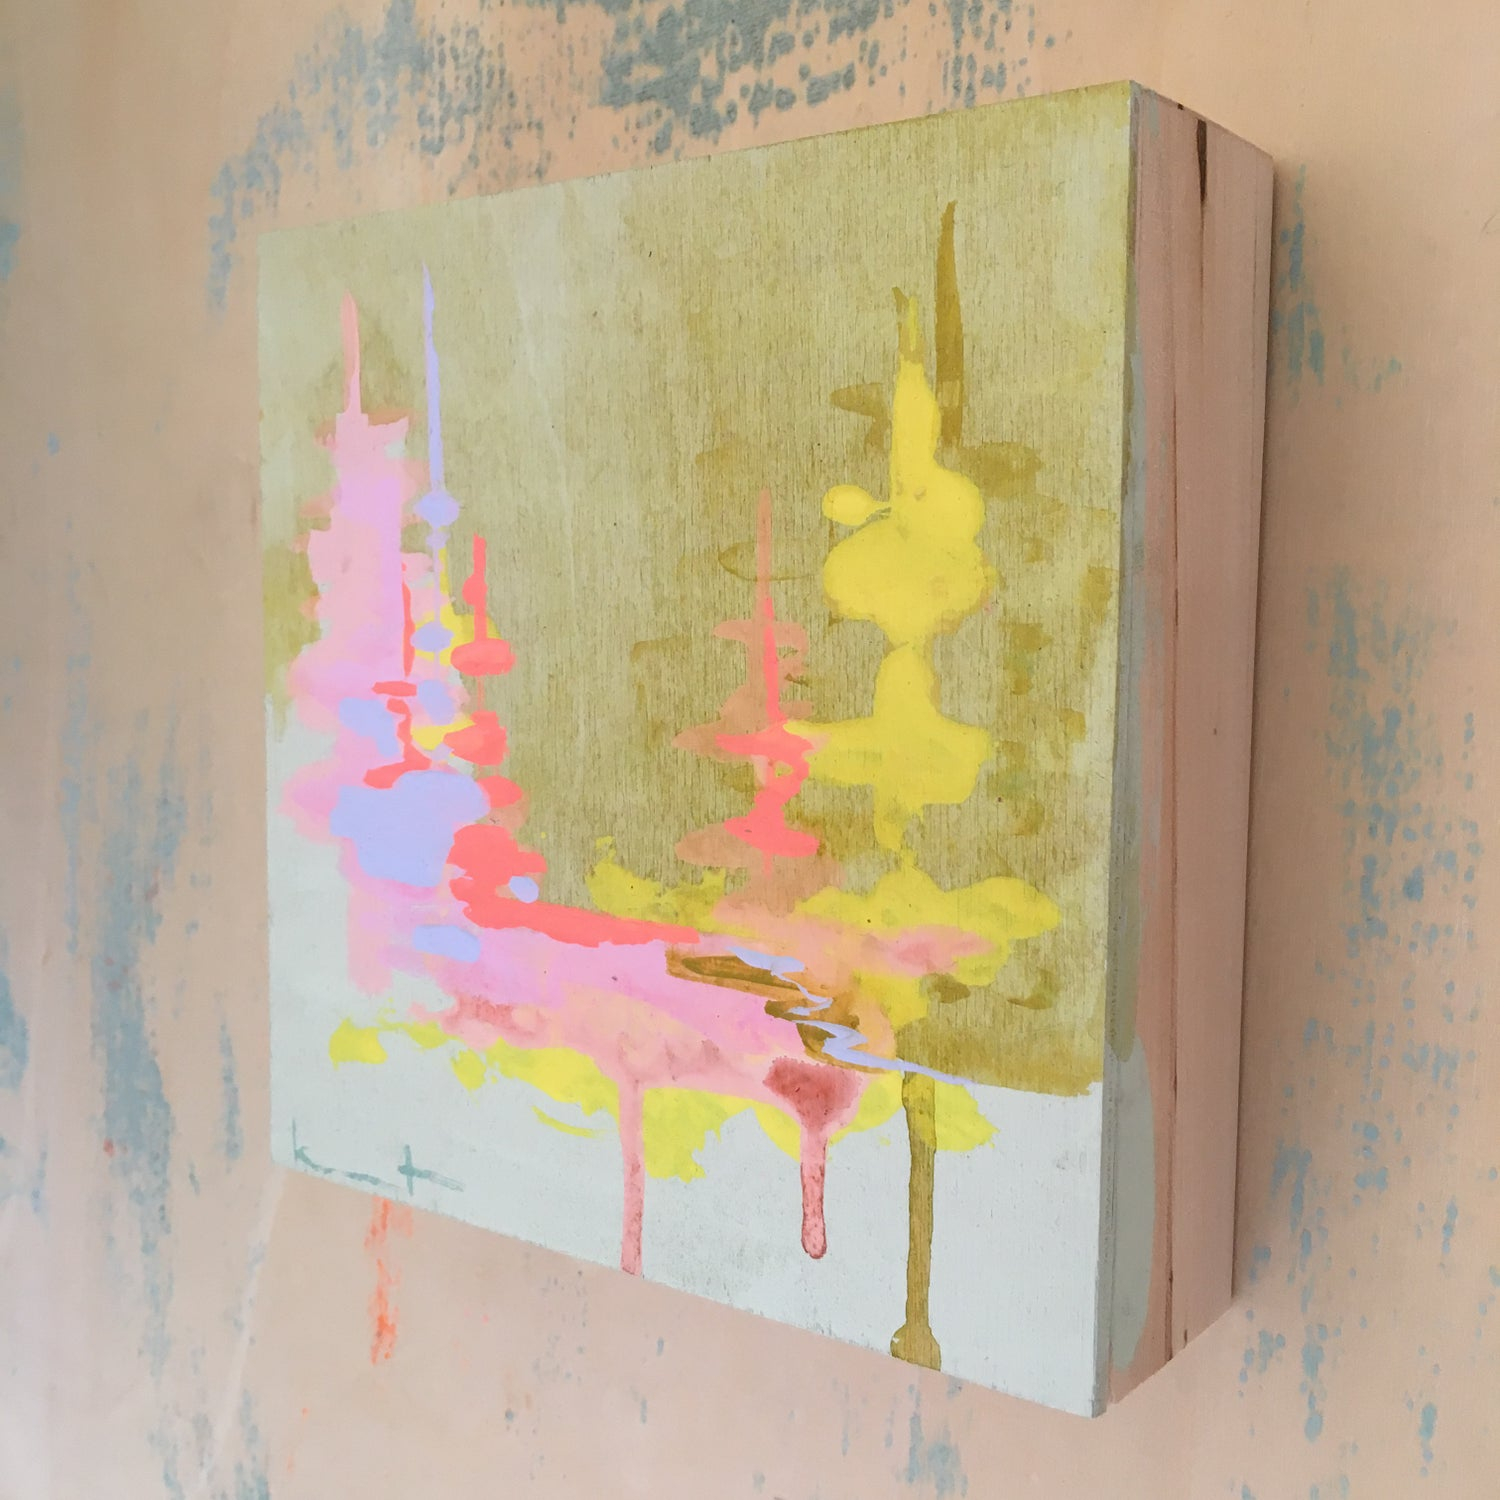 Image of Tiny Painting No. 62 (pond, neon creamsicle, mist)